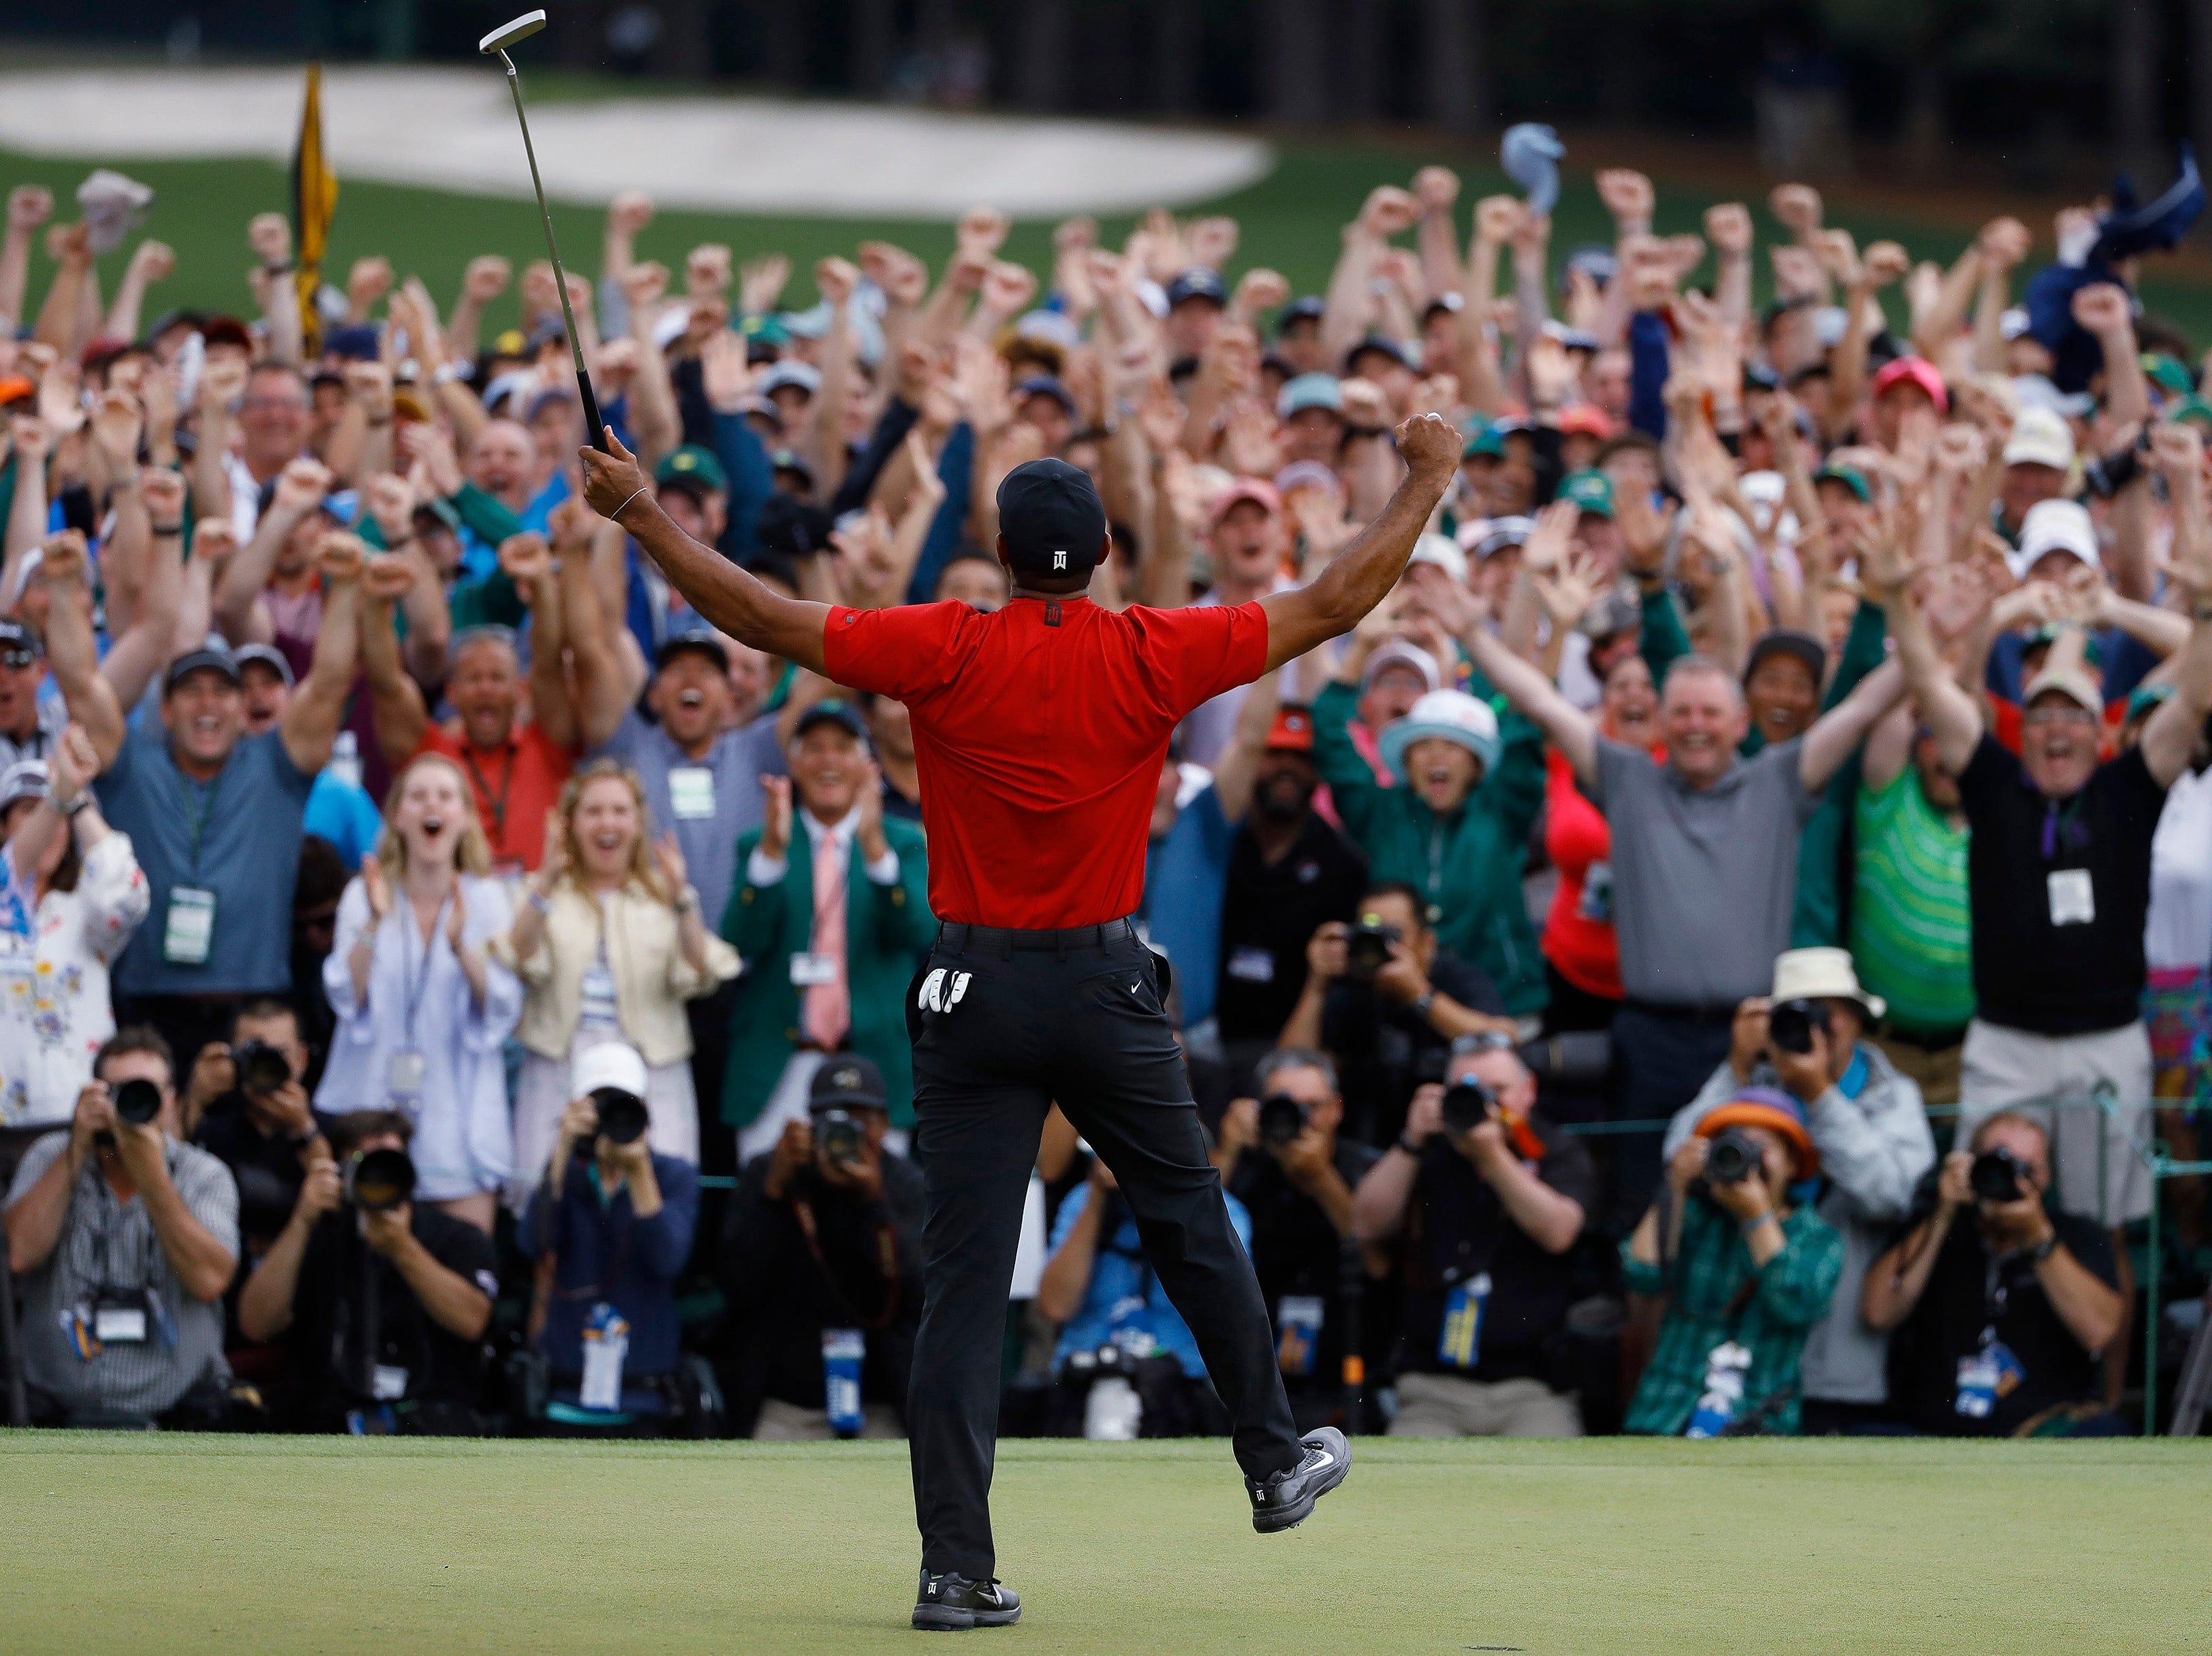 Tiger Woods reacts as he wins the Masters golf tournament Sunday, April 14, 2019, in Augusta, Ga.